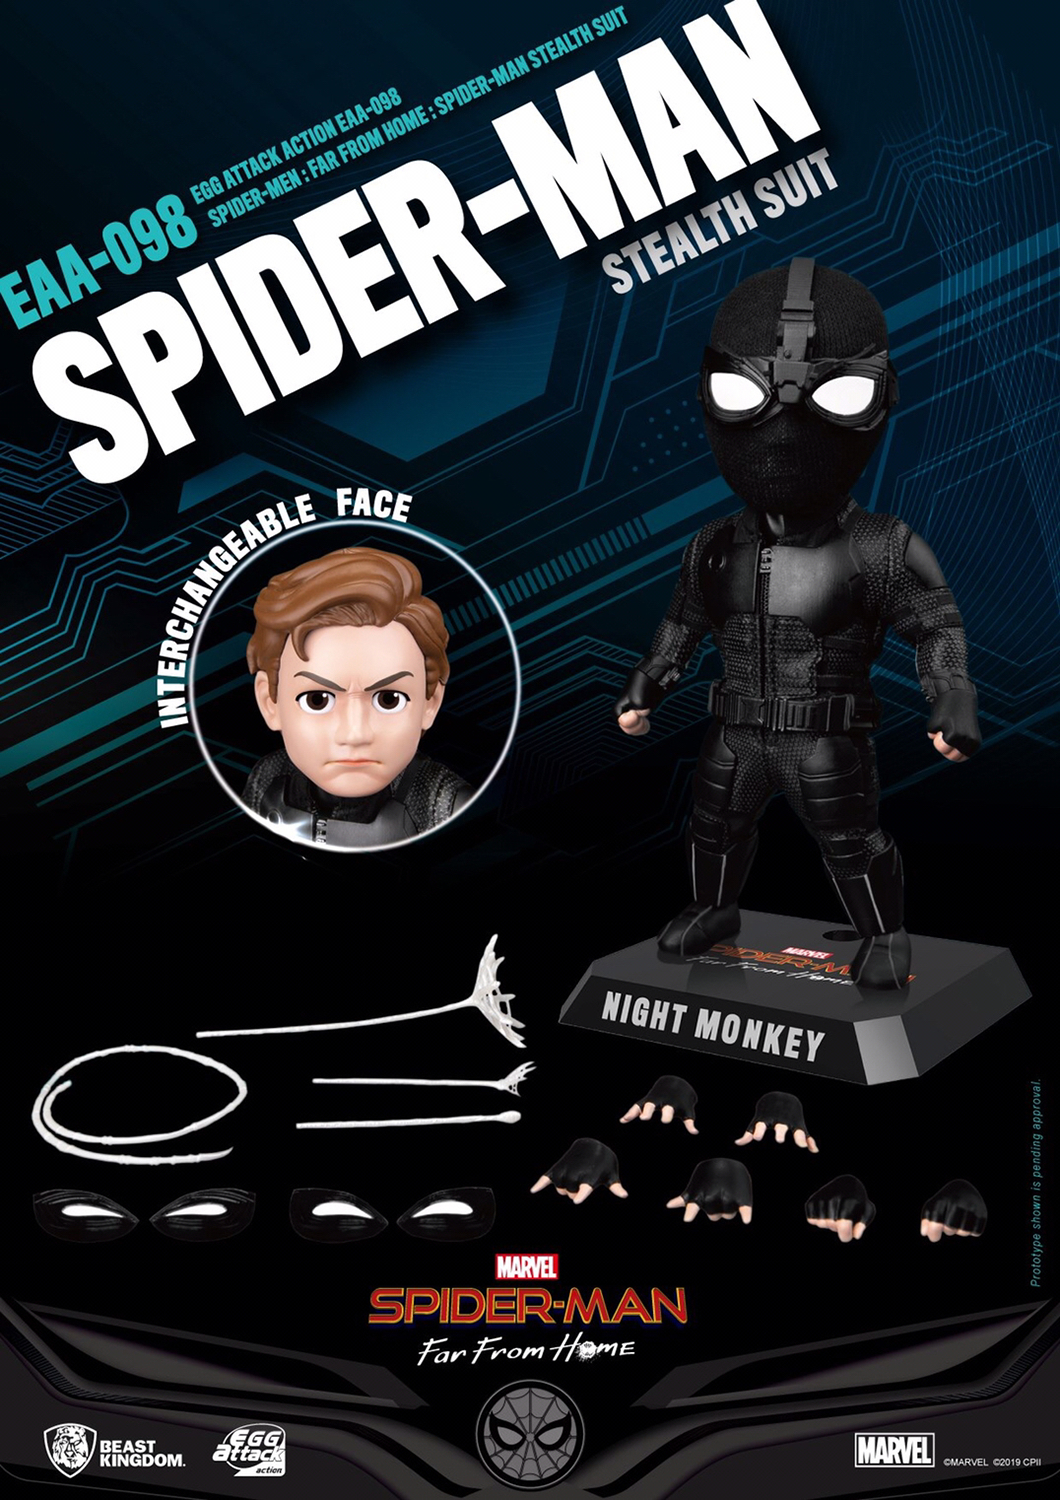 SPIDER-MAN FAR FROM HOME EAA-098 SPIDER-MAN STEALTH PX AF (S